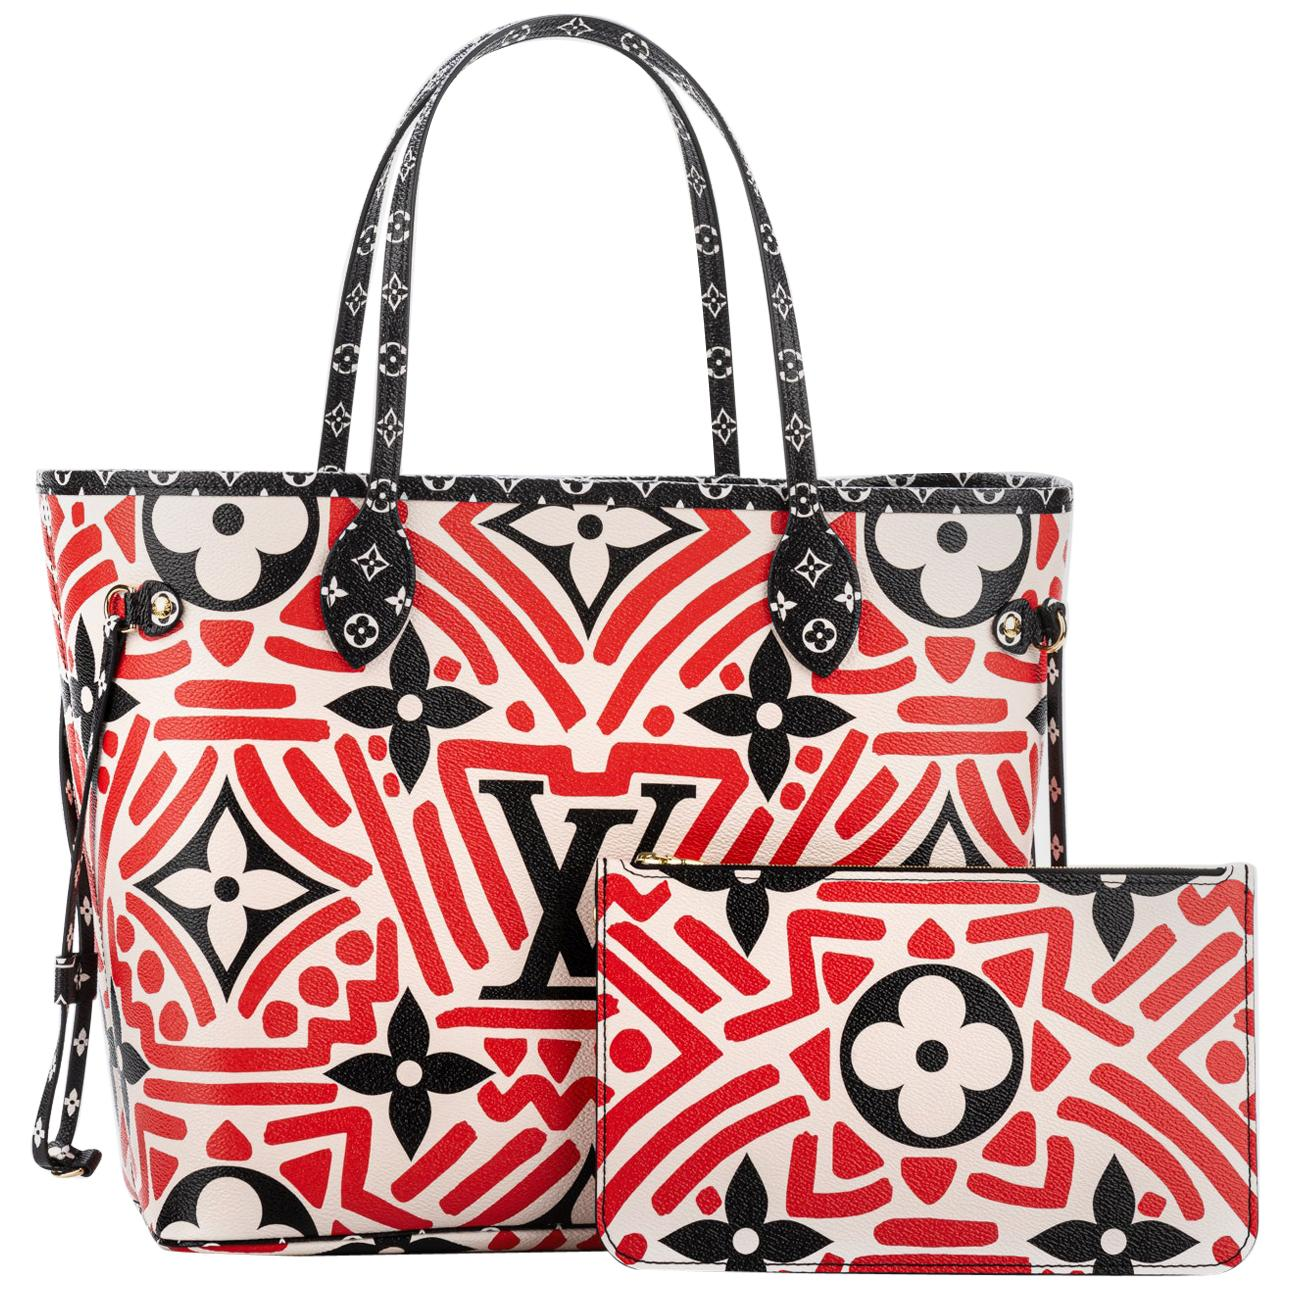 New in Box Louis Vuitton 2020 Neverfull Red Black Geometric Bag